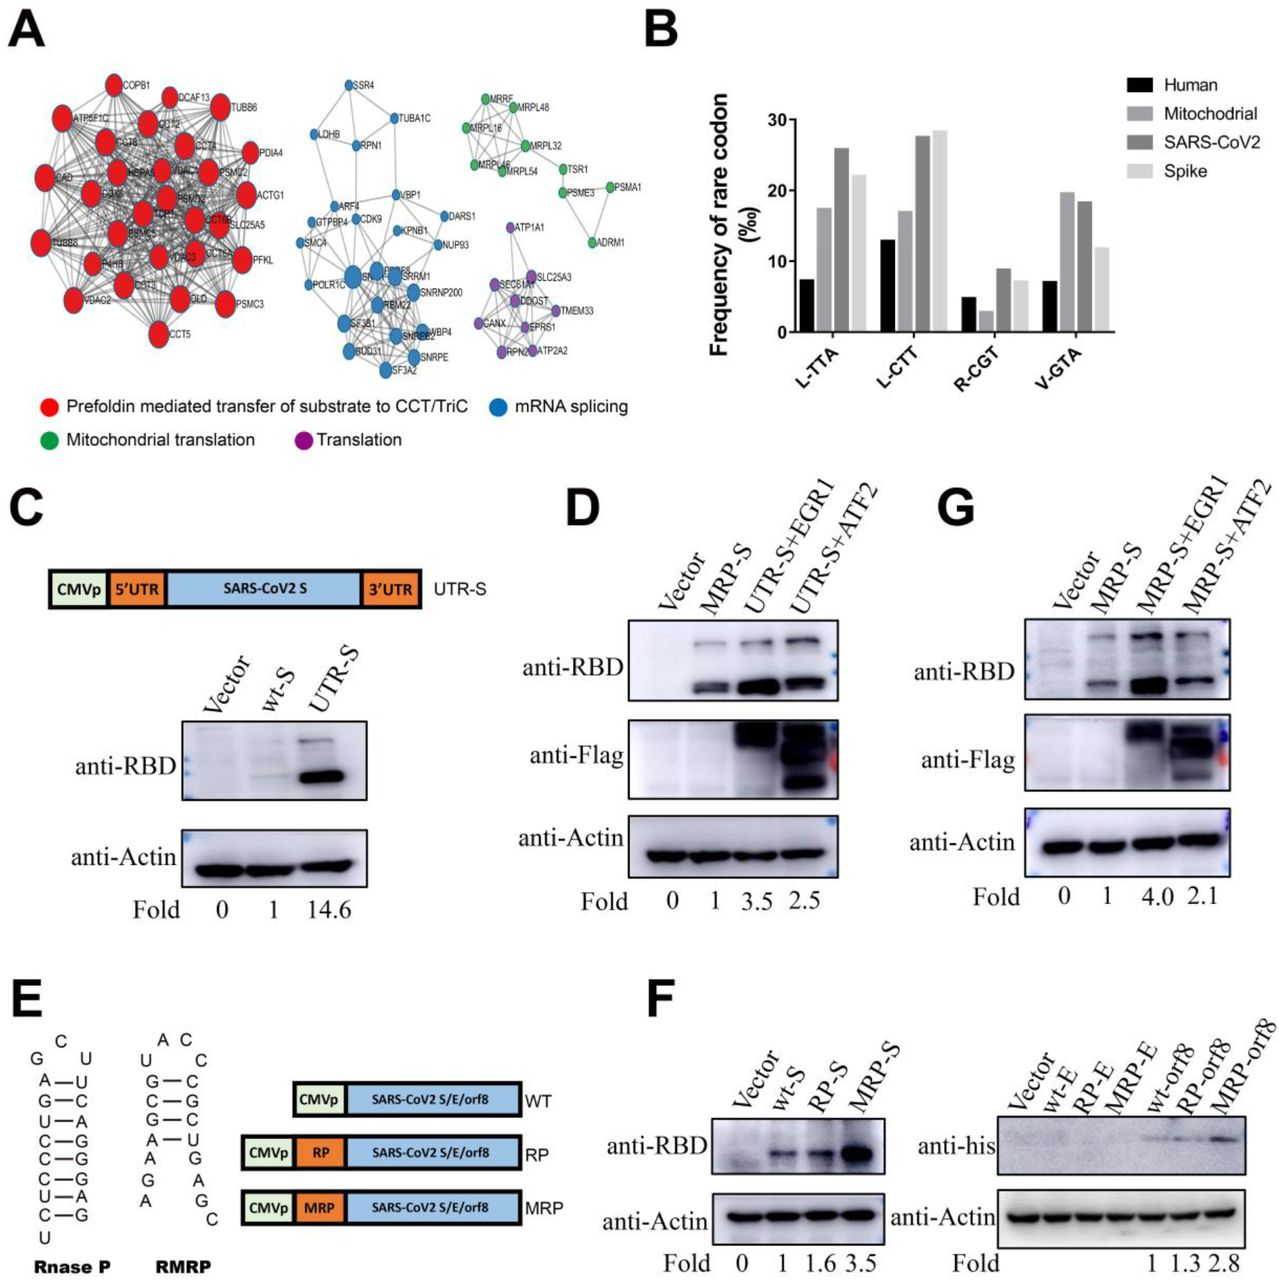 Mitochondrial localization is critical for the translation of SARS-CoV-2 S protein (A) The interaction network of proteins that bound with S was analyzed using Metascape. (B) The frequency of rare codons in SARS-CoV-2, S protein, human nuclear genome and the human mitochondrial genome using the Codon Usage Database. (C) The protein expression of S flanked by SARS-CoV-2 5'- and 3'-UTR sequences in HEK-293 cell lines. (D) The effect of EGR1 and ATF2 on S protein (plus SARS-CoV-2 5'- and 3' UTS sequences) expression was analysed using Western blot after transfection into HEK-293 cells. Fold change was determined using Image J software. (E) The skeleton of recombinant plasmids encoding S with or without mitochondrial localisation signals (MLS) RnaseP or RMRP. (F) Protein expression of SARS-CoV-2 derived sequences including S, E and ORF8 and variants expressing MLS as analysed by Western blot after transfection into HEK-293 cells. (G) The effect of EGR1 and ATF2 on wild type spike with RMRP binding motif (MRP).